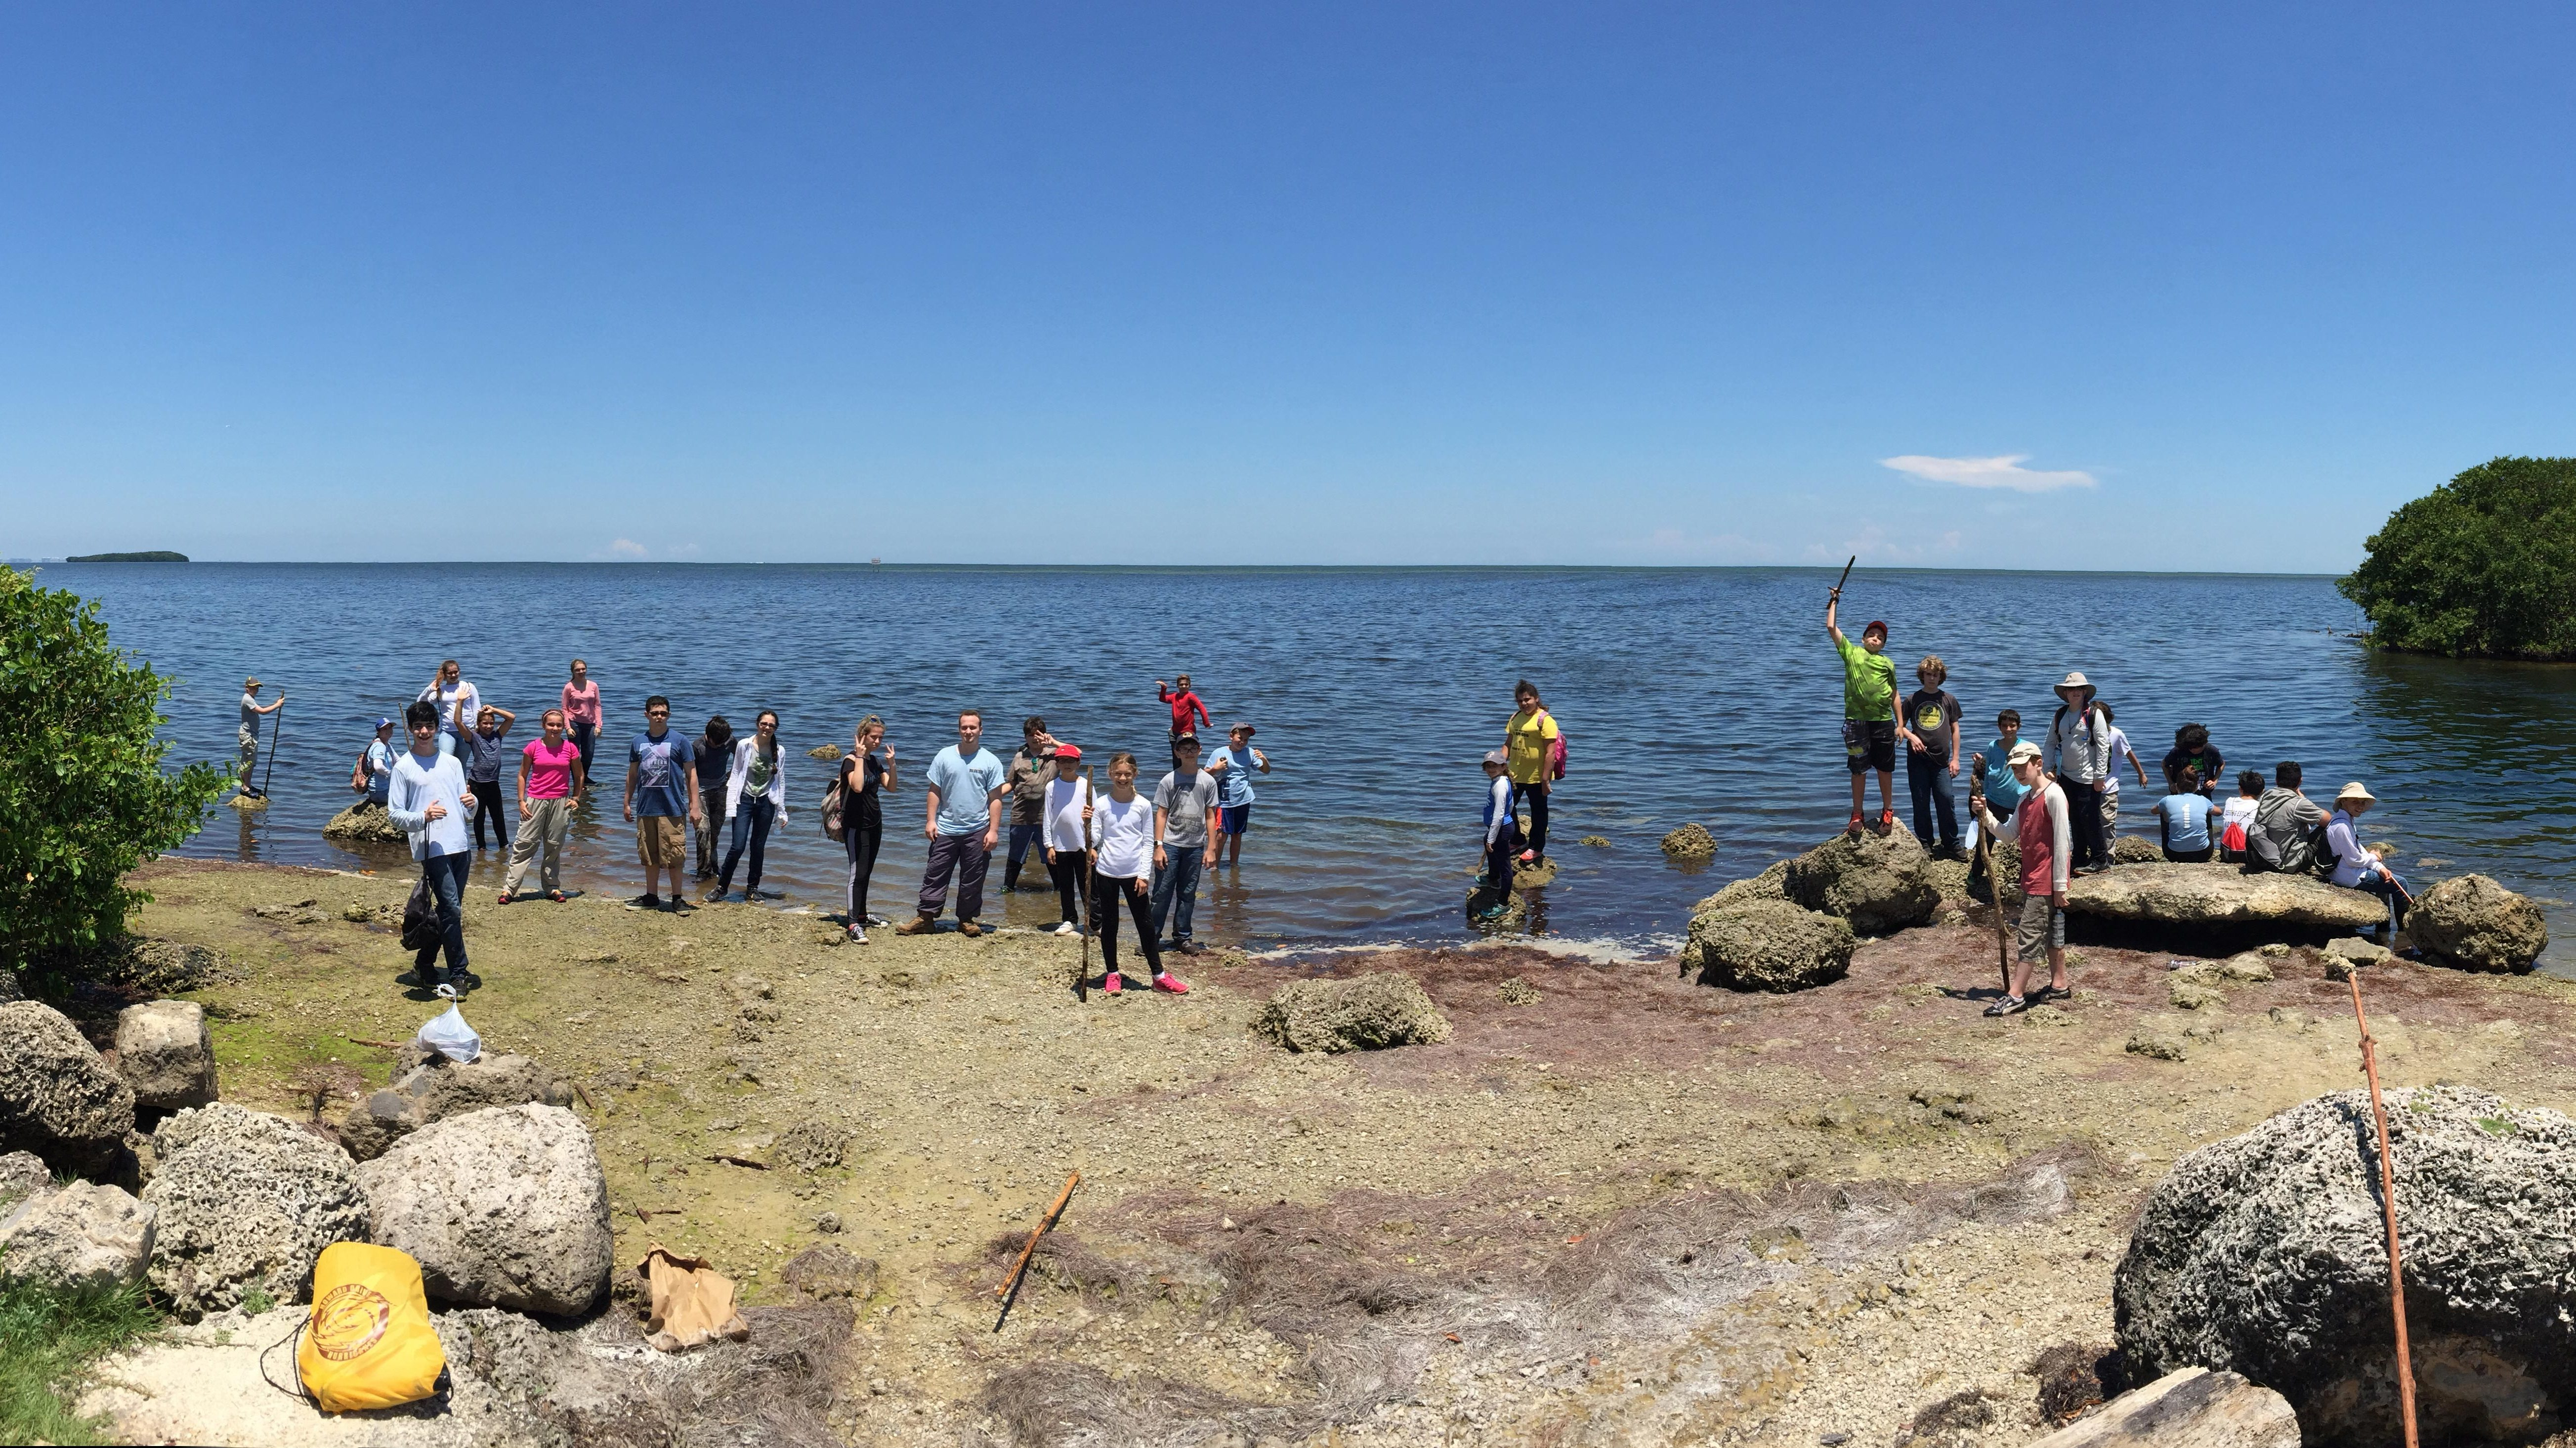 Campers gathered at Deering Point after a long hike